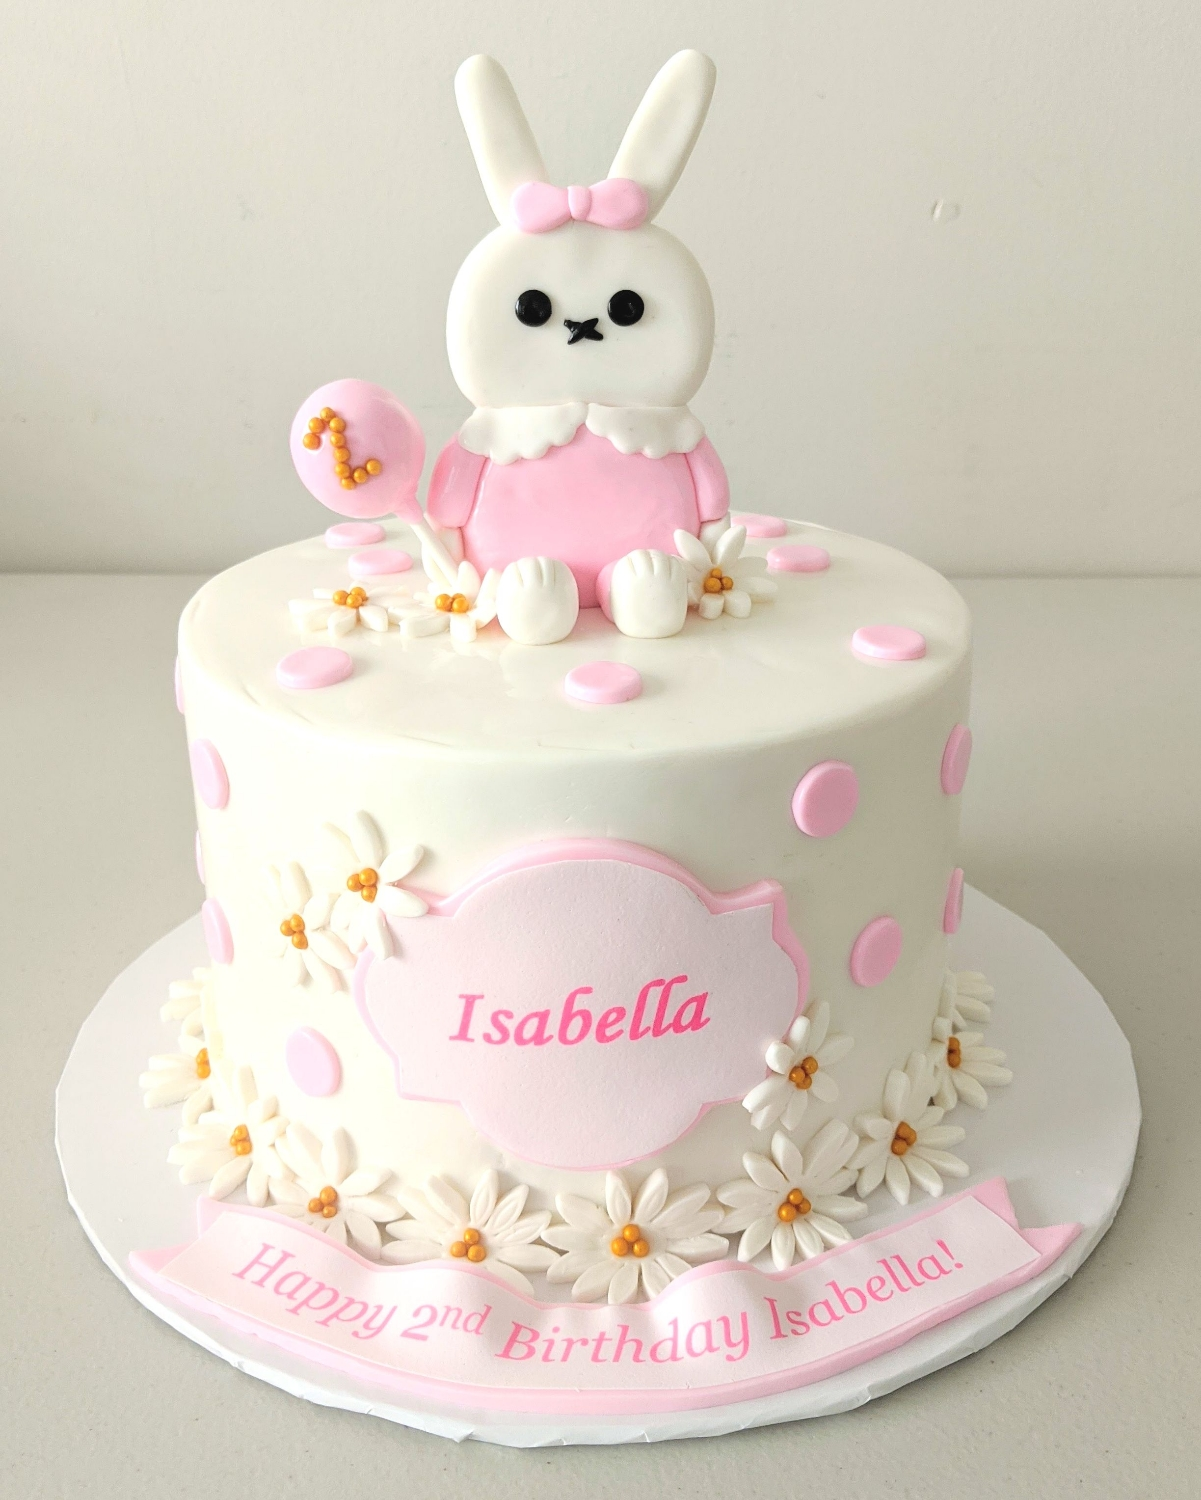 Bunny and Petals Birthday Cake